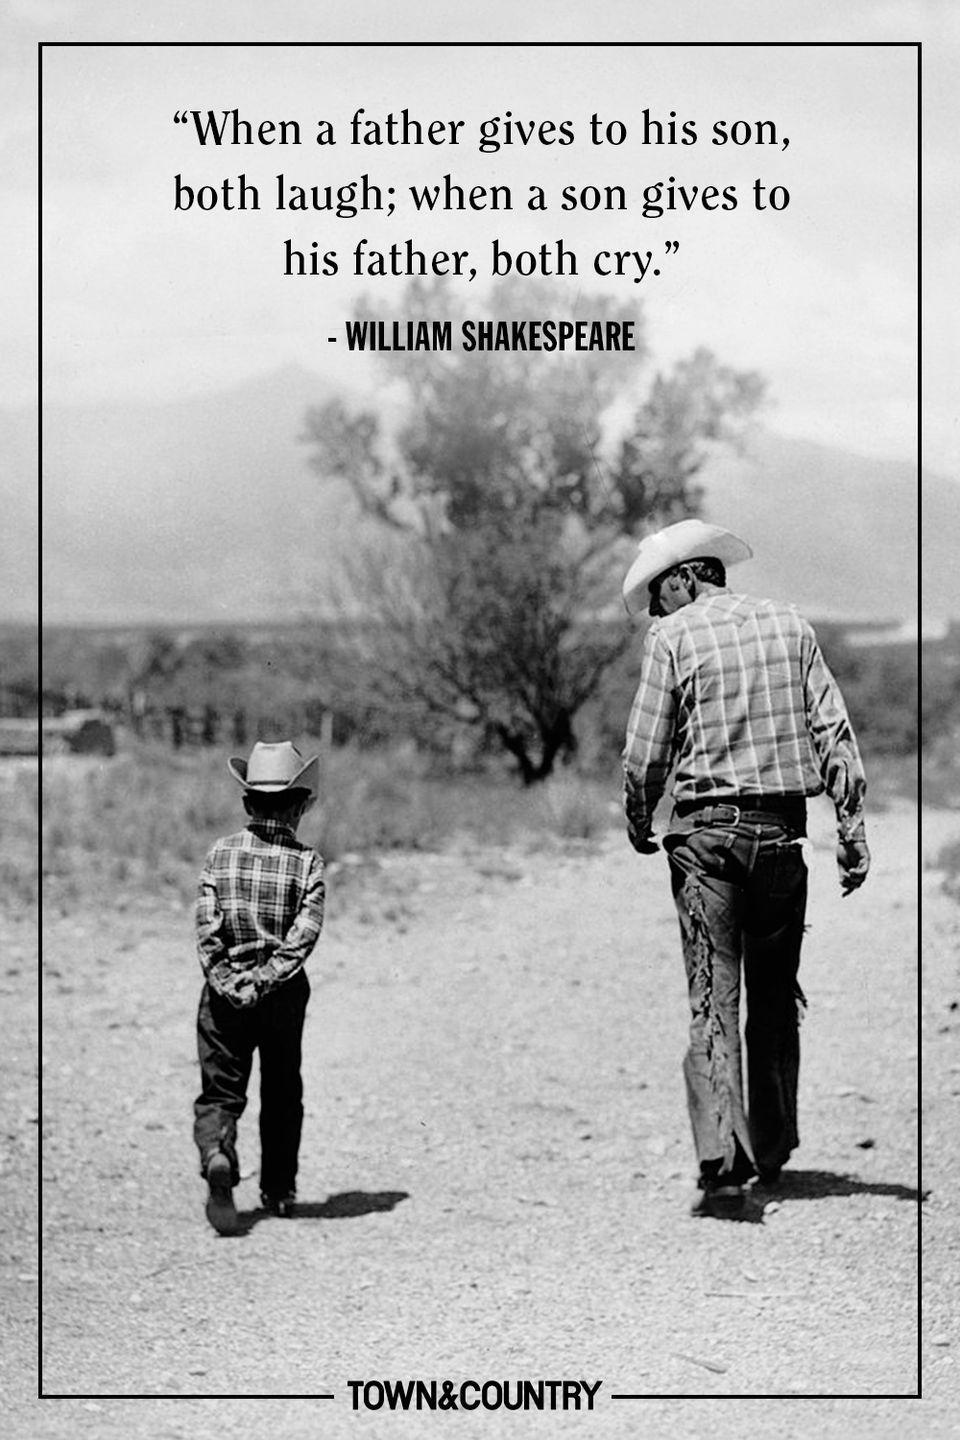 "<p>""When a father gives to his son, both laugh; when a son gives to his father, both cry.""</p><p>- William Shakespeare</p>"